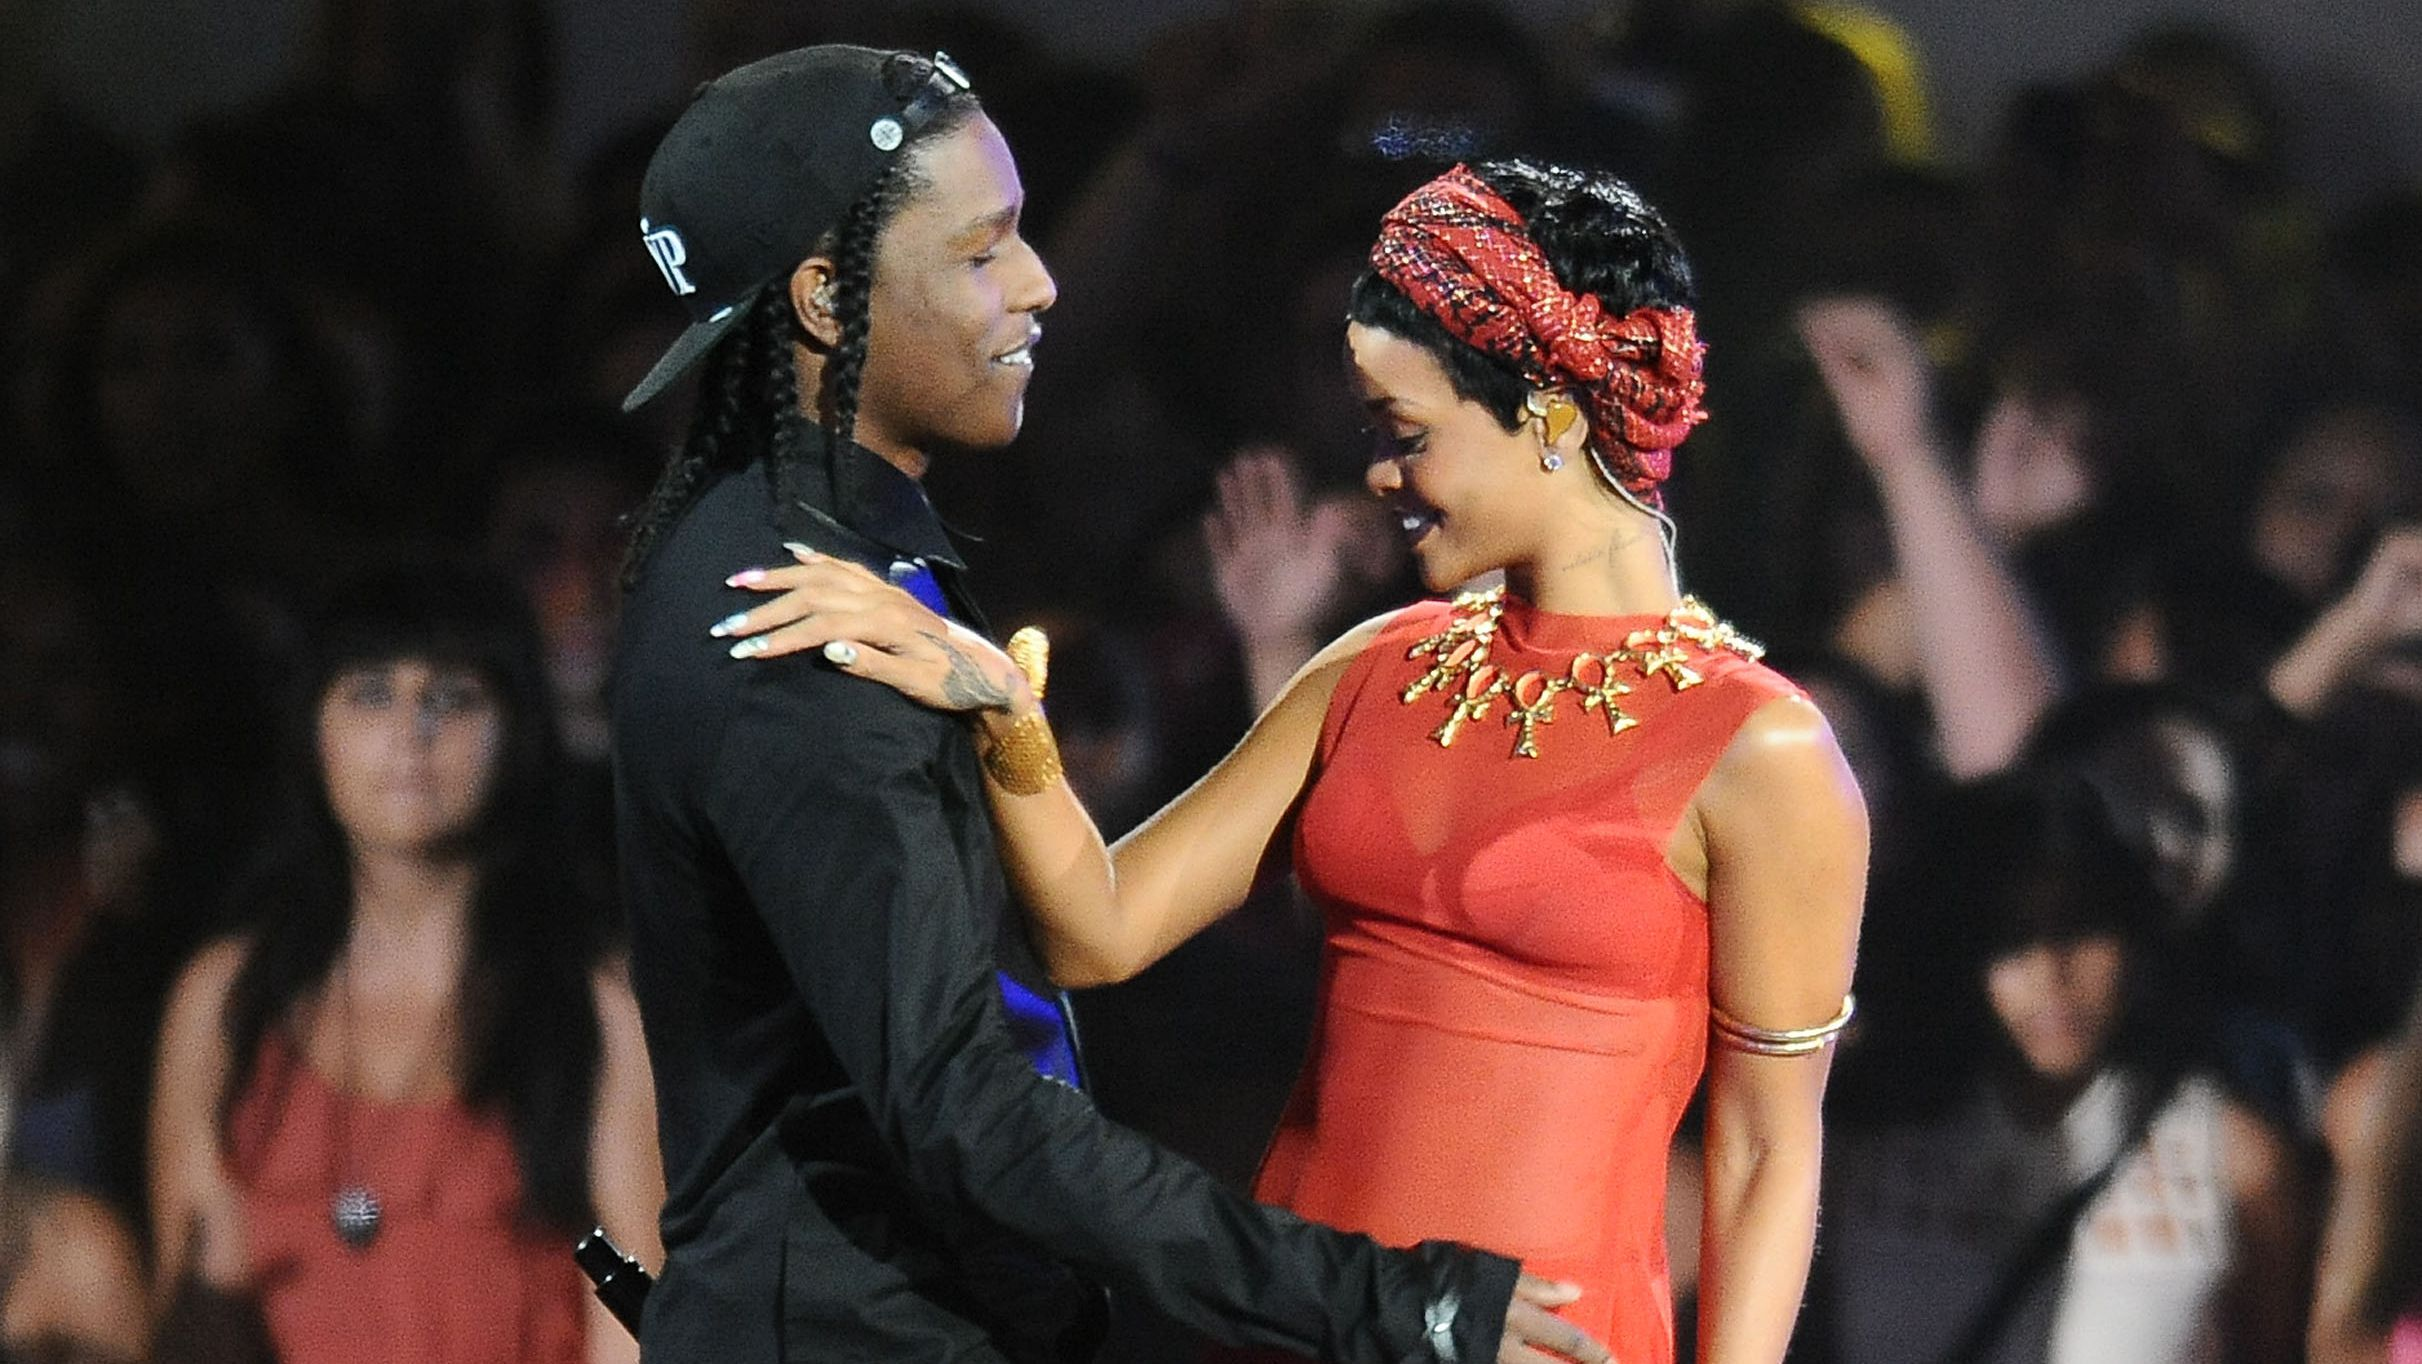 Rihanna, ASAP Rocky Dating Rumors and Real Truth